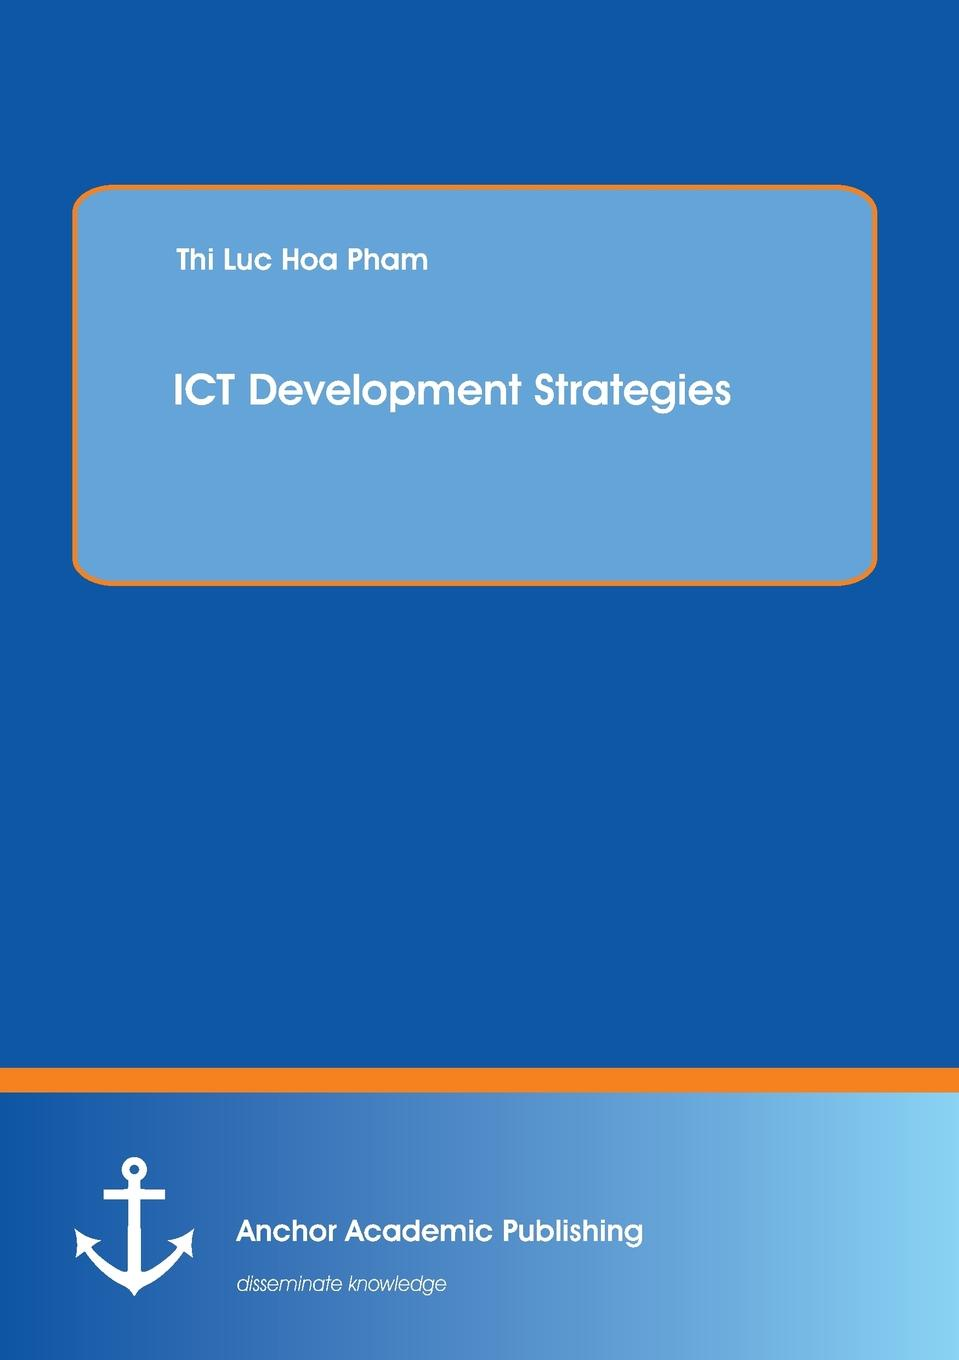 Thi Luc Hoa Pham ICT Development Strategies mary wanjiru ng ang a zachary kosgei joyce kanyiri ict adoption in schools